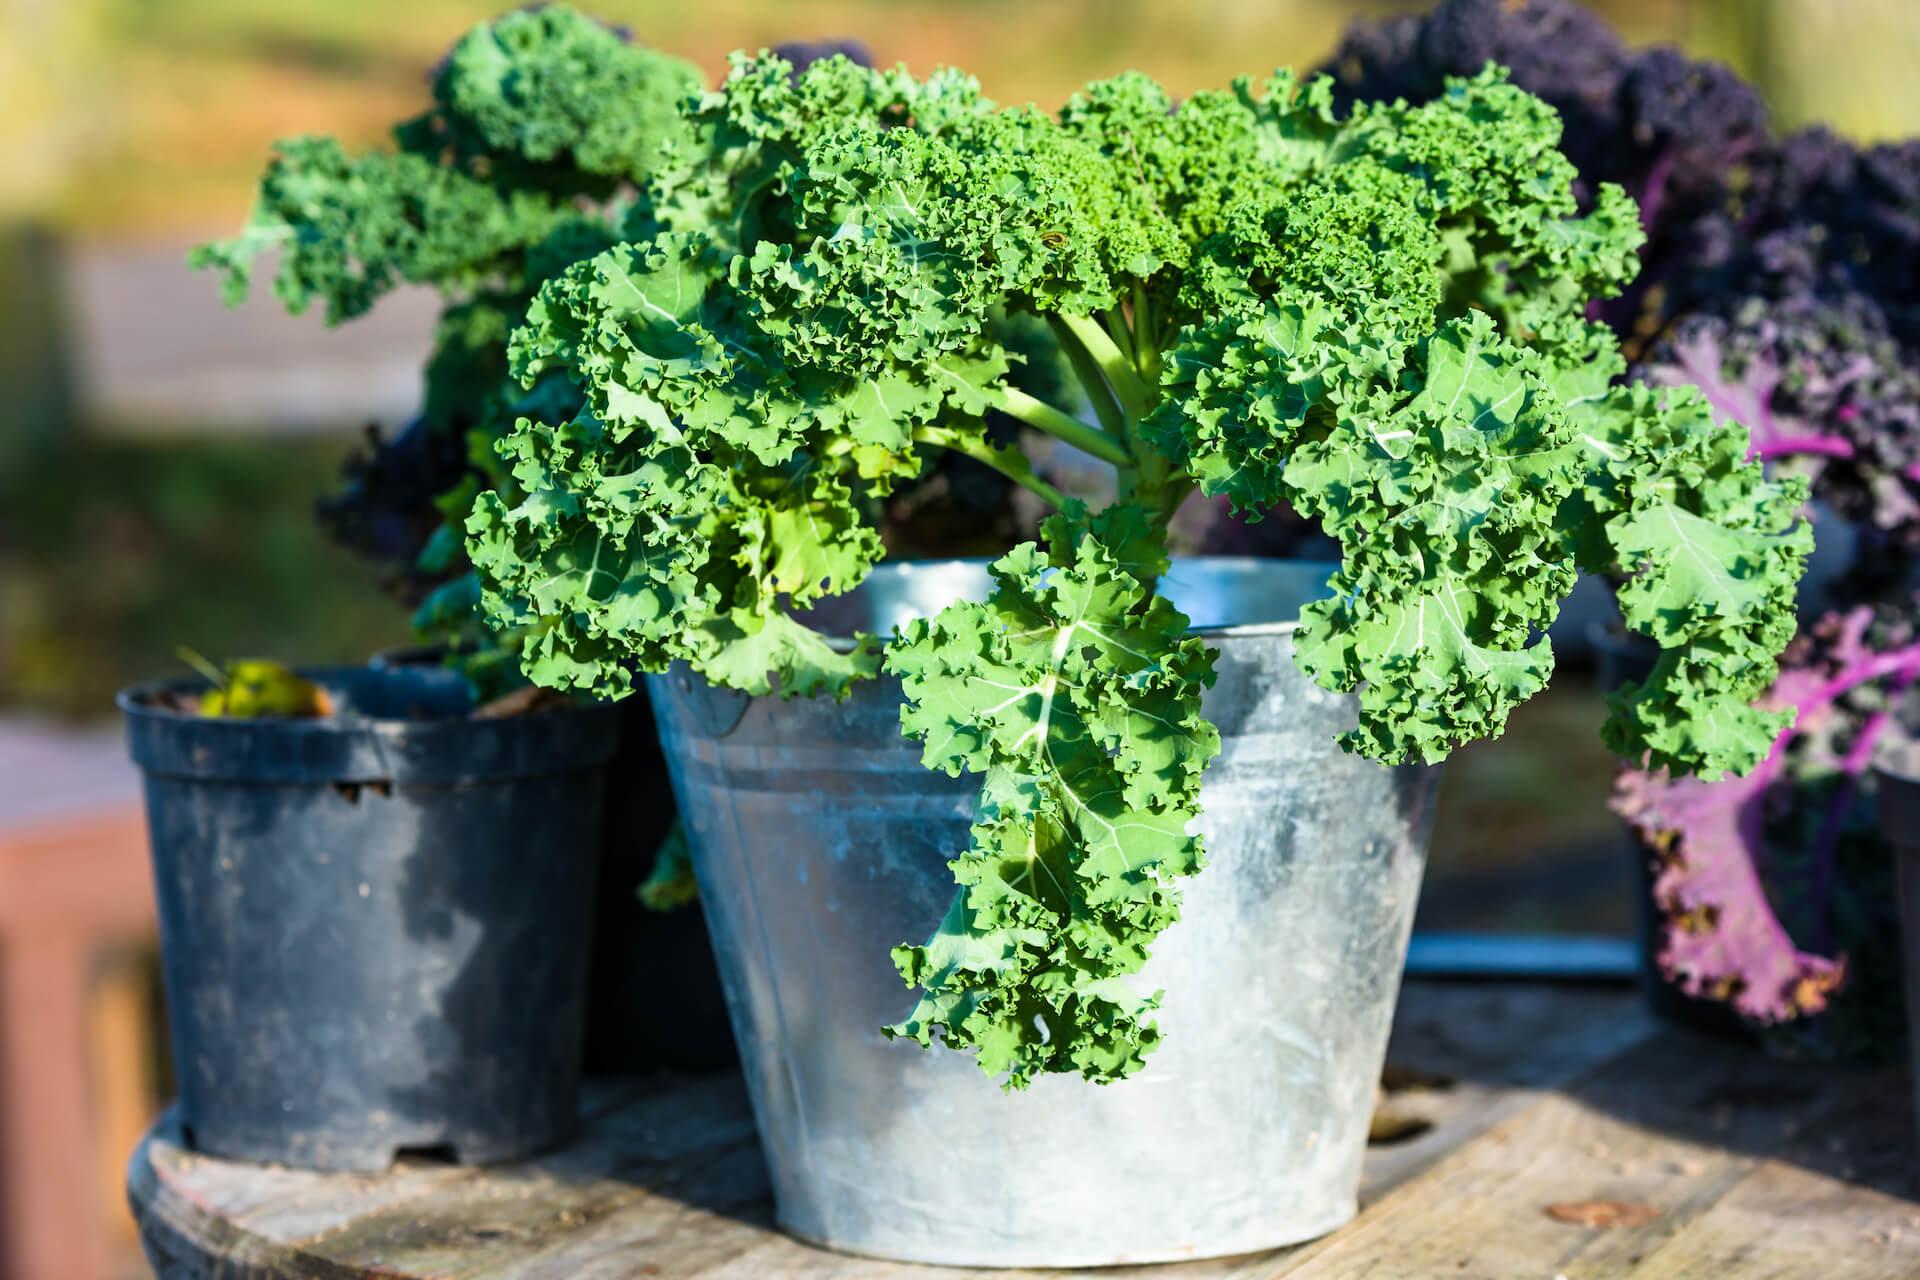 Green kale plant in zinc planter or pot.